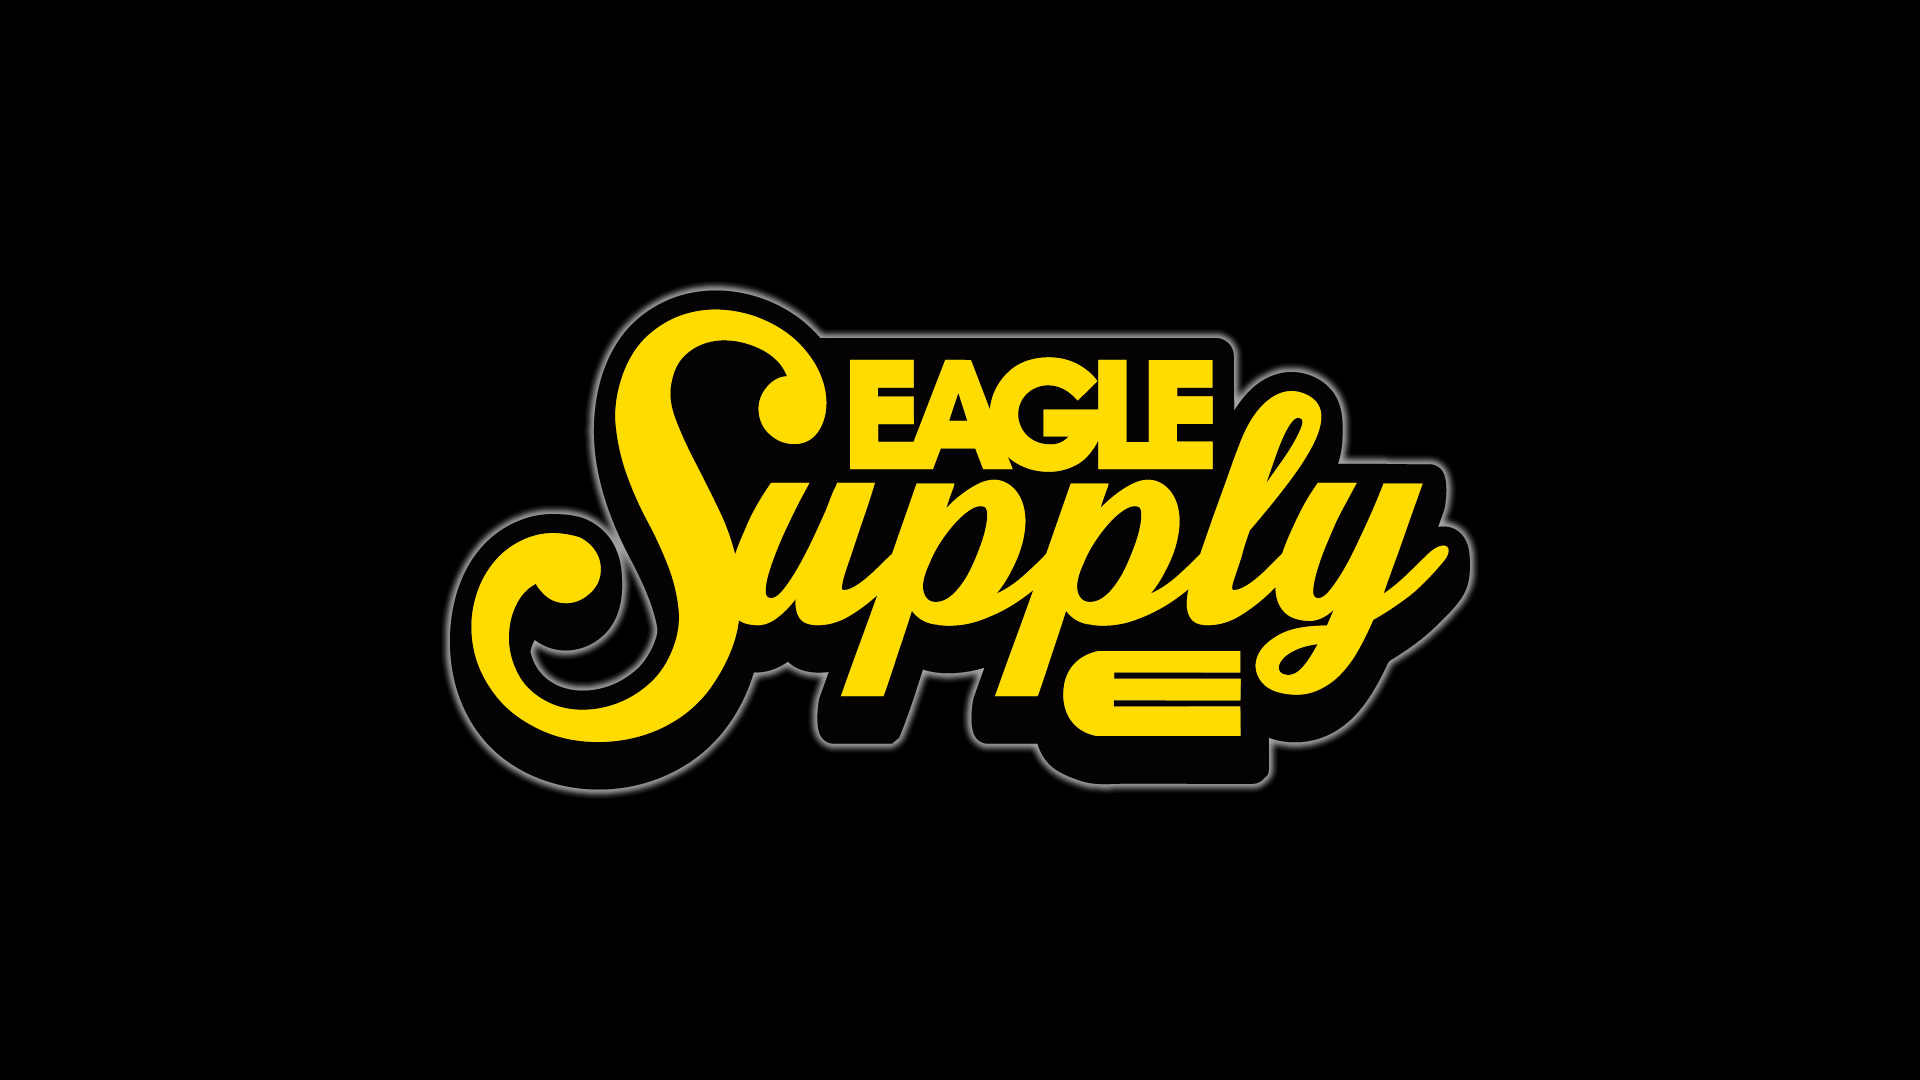 Wallpaper Eagle Supply badge logo